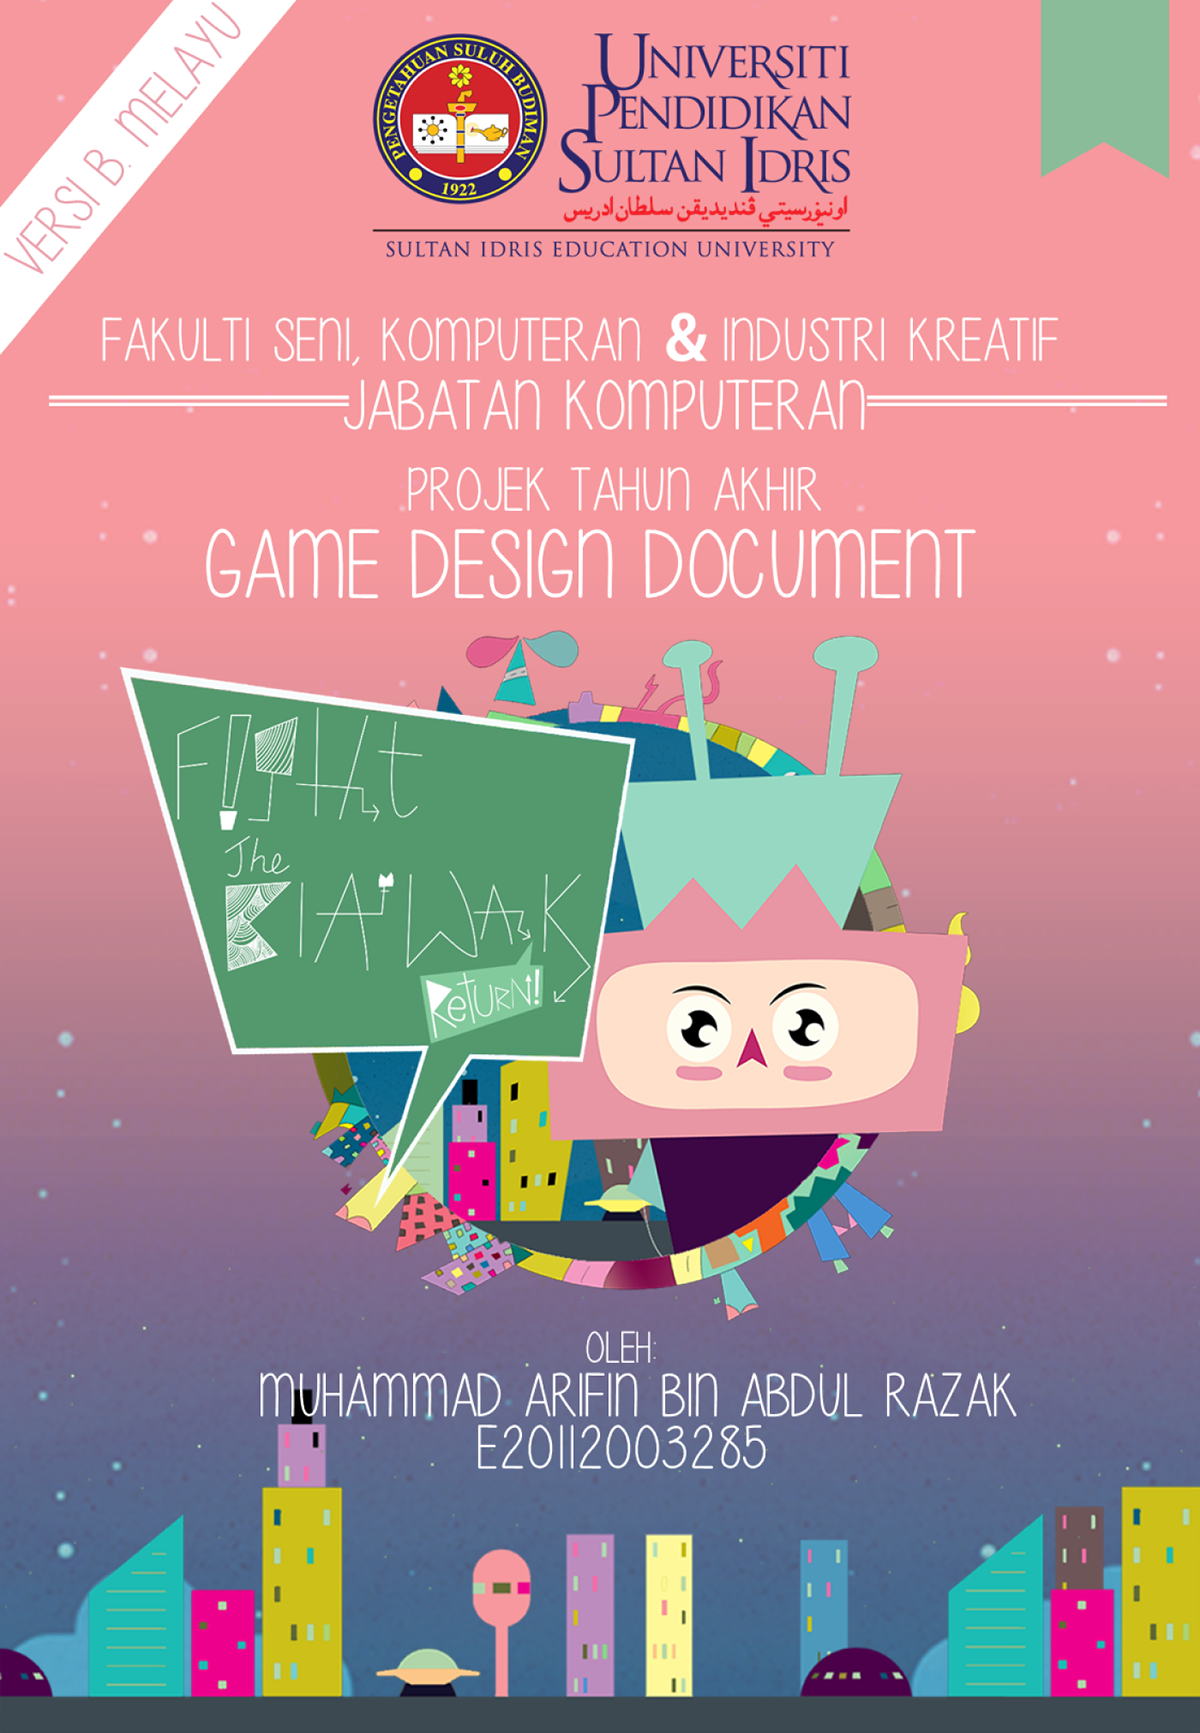 FYP Game Design Document Malay Version On Student Show - Contoh game design document